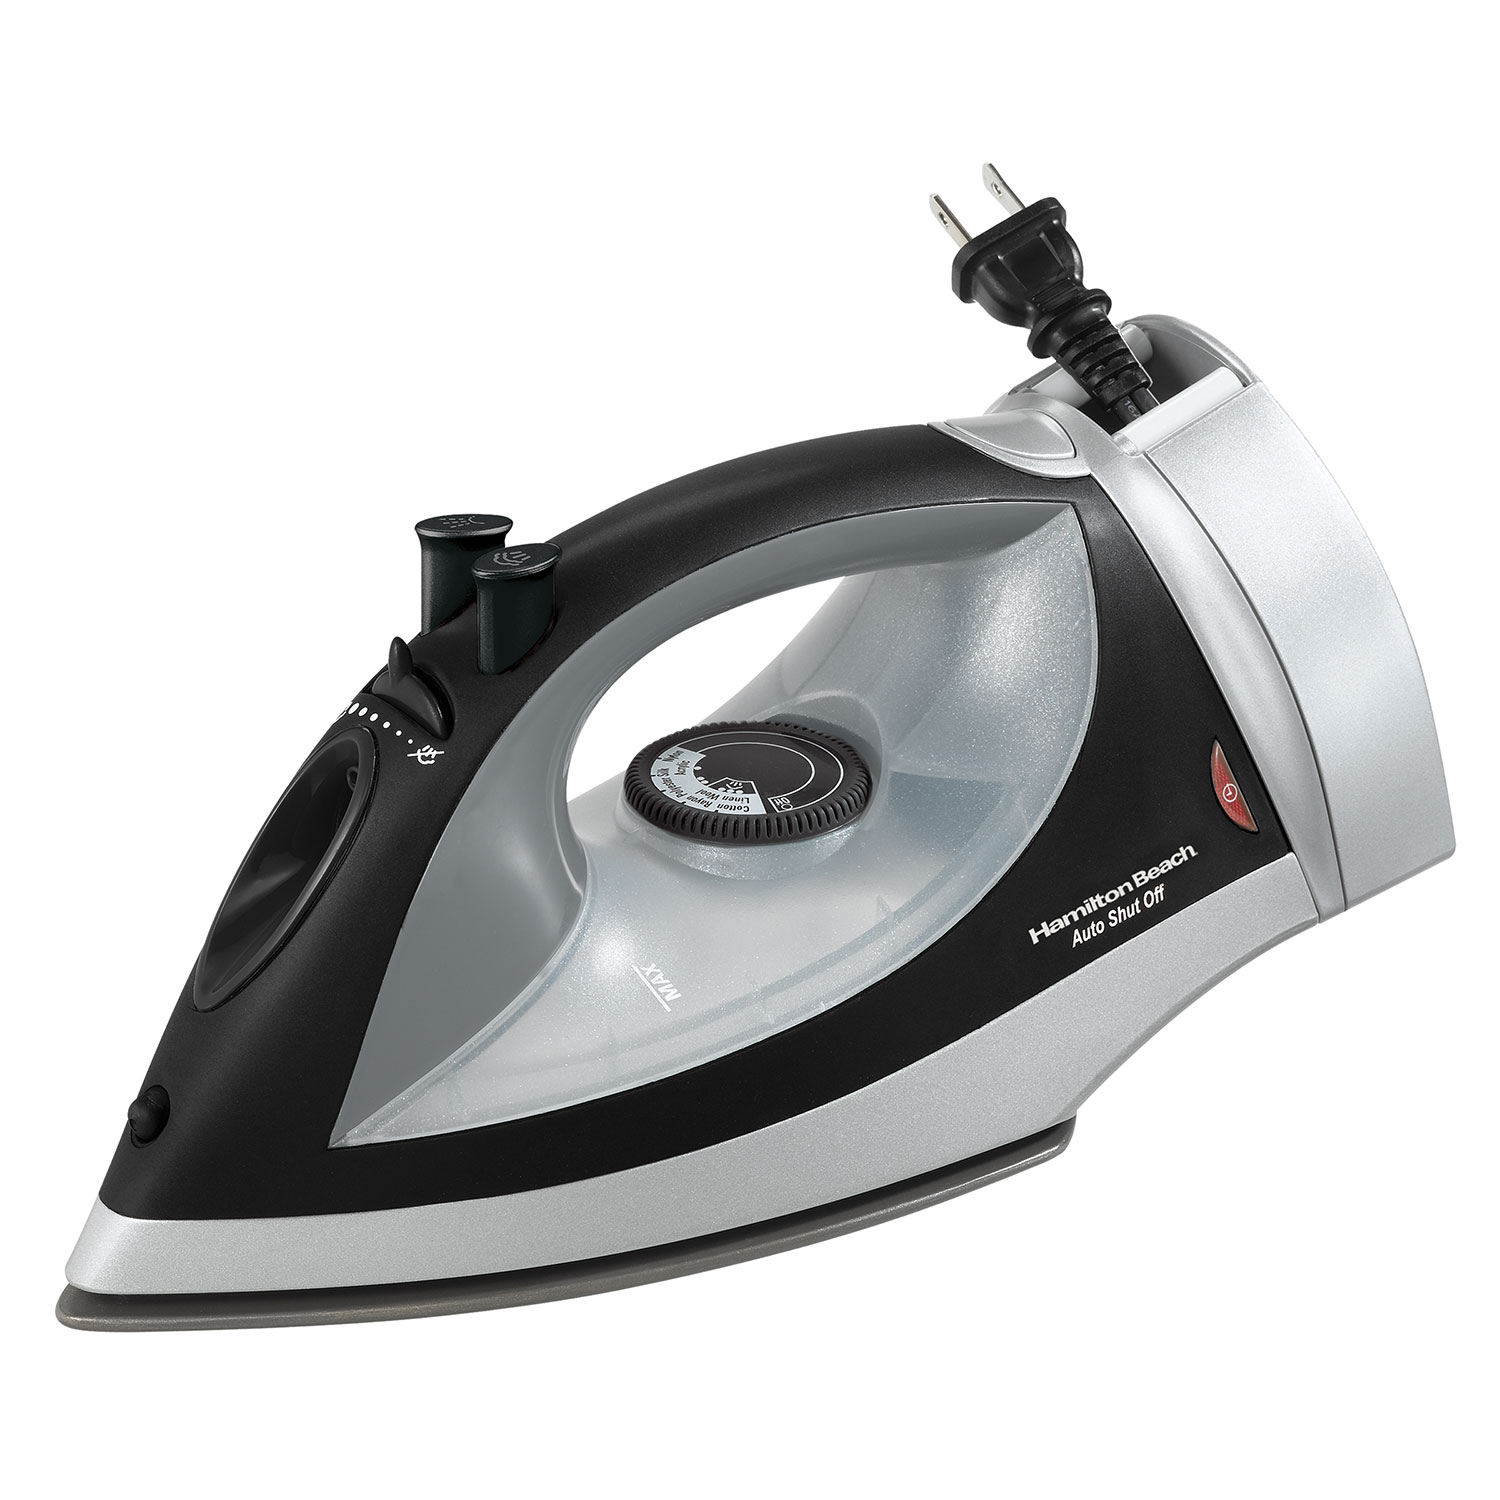 Nonstick Iron with Retractable Cord (14210R)